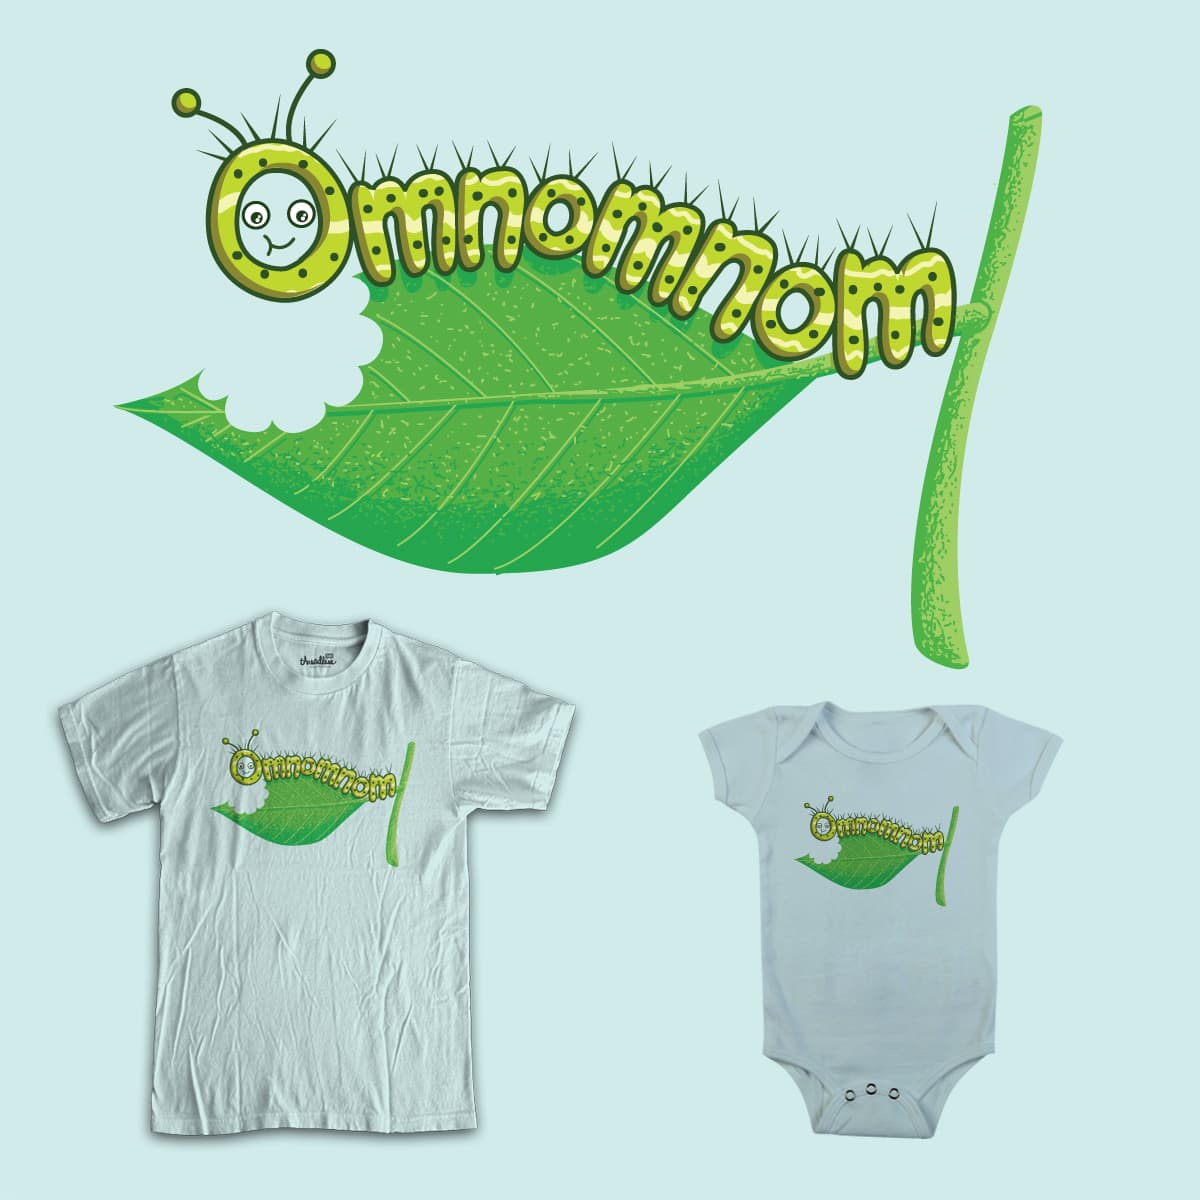 The Very Hungry Caterpillar by staffell on Threadless